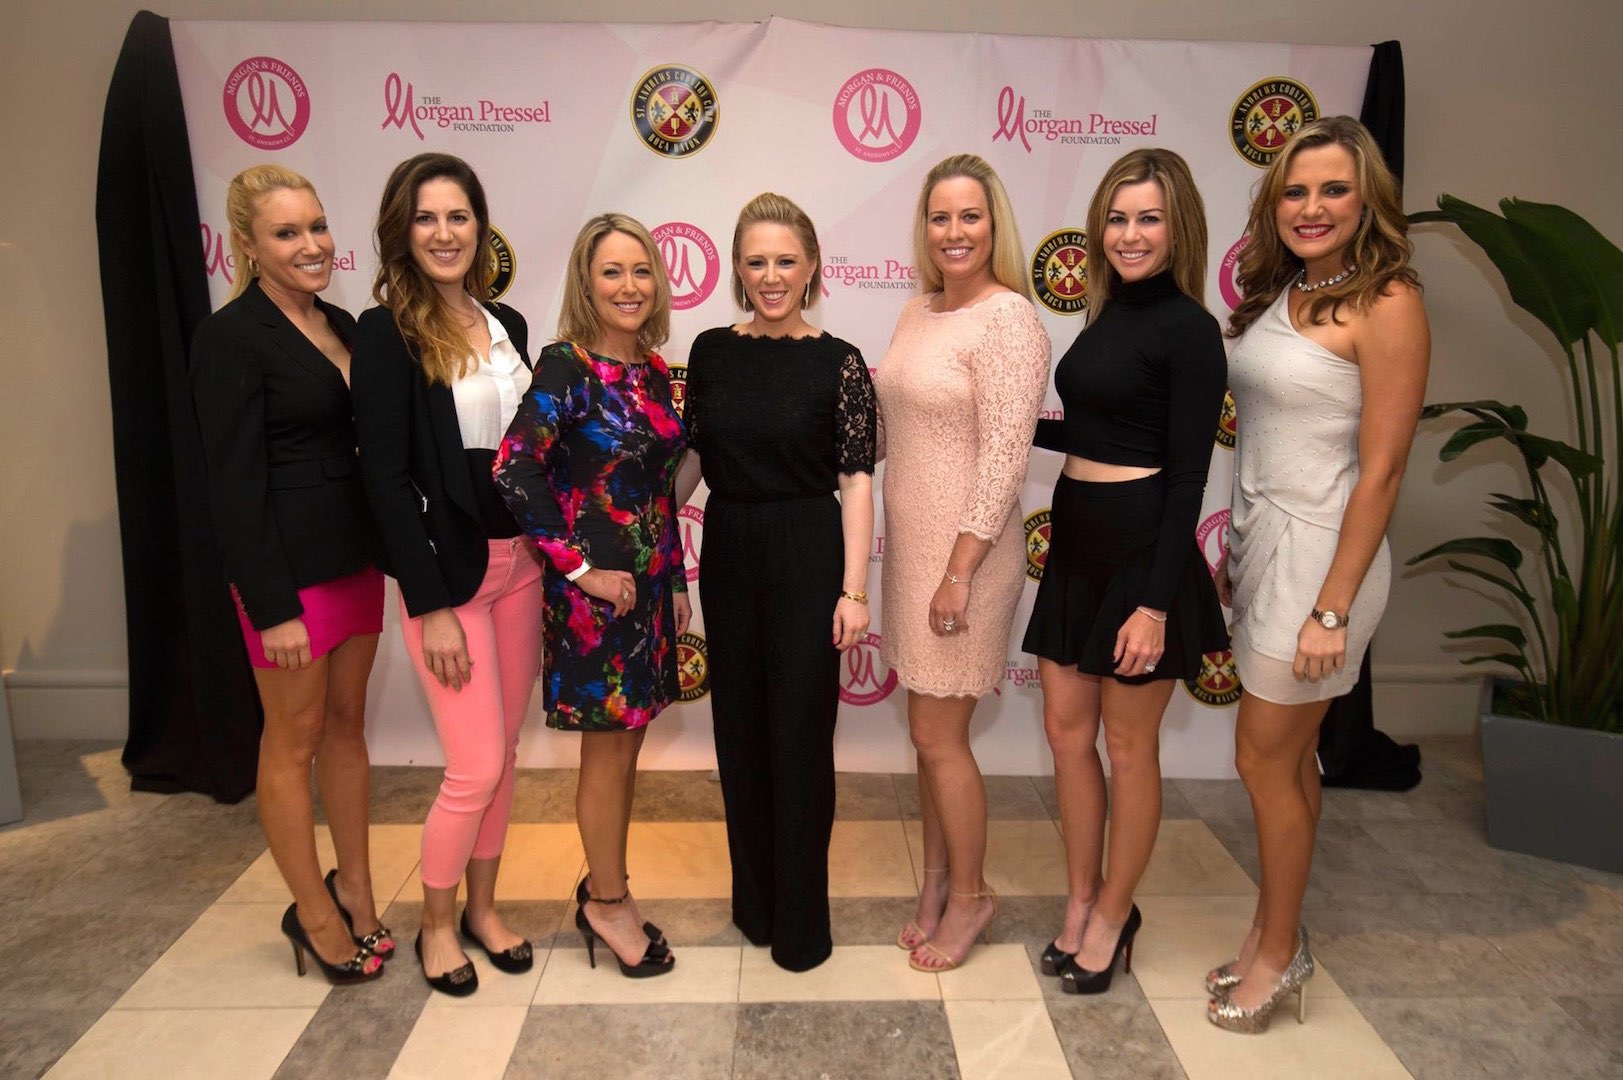 Morgan Pressel Foundation raises $1m for Breast Cancer